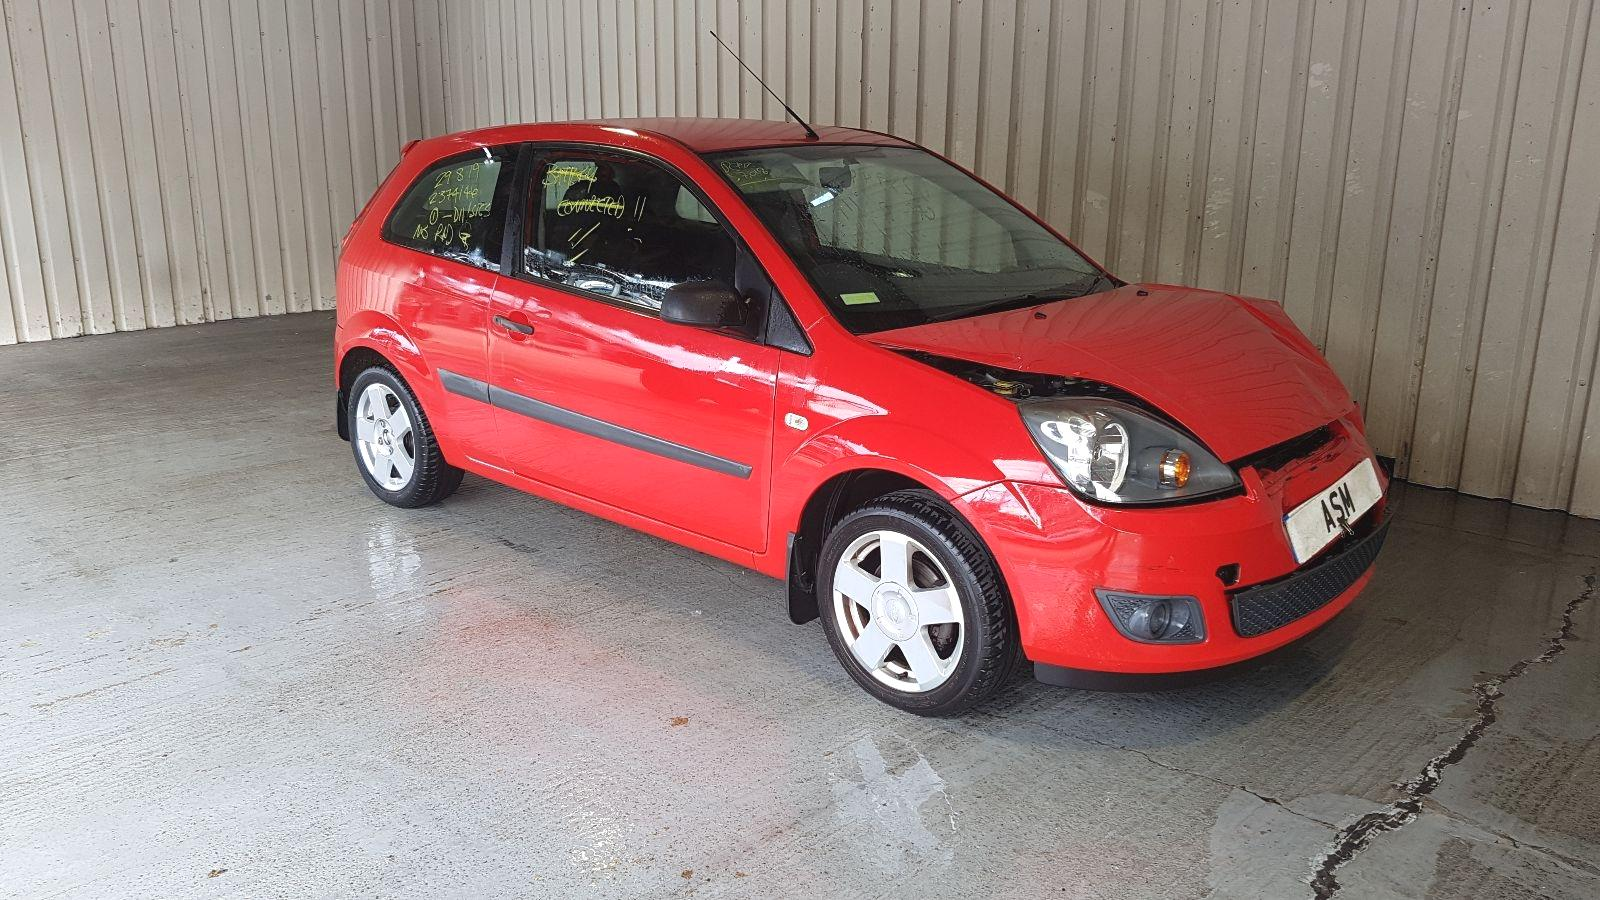 Image for a 2006 Ford Fiesta 1.4 Petrol FXJA/FXJB Engine